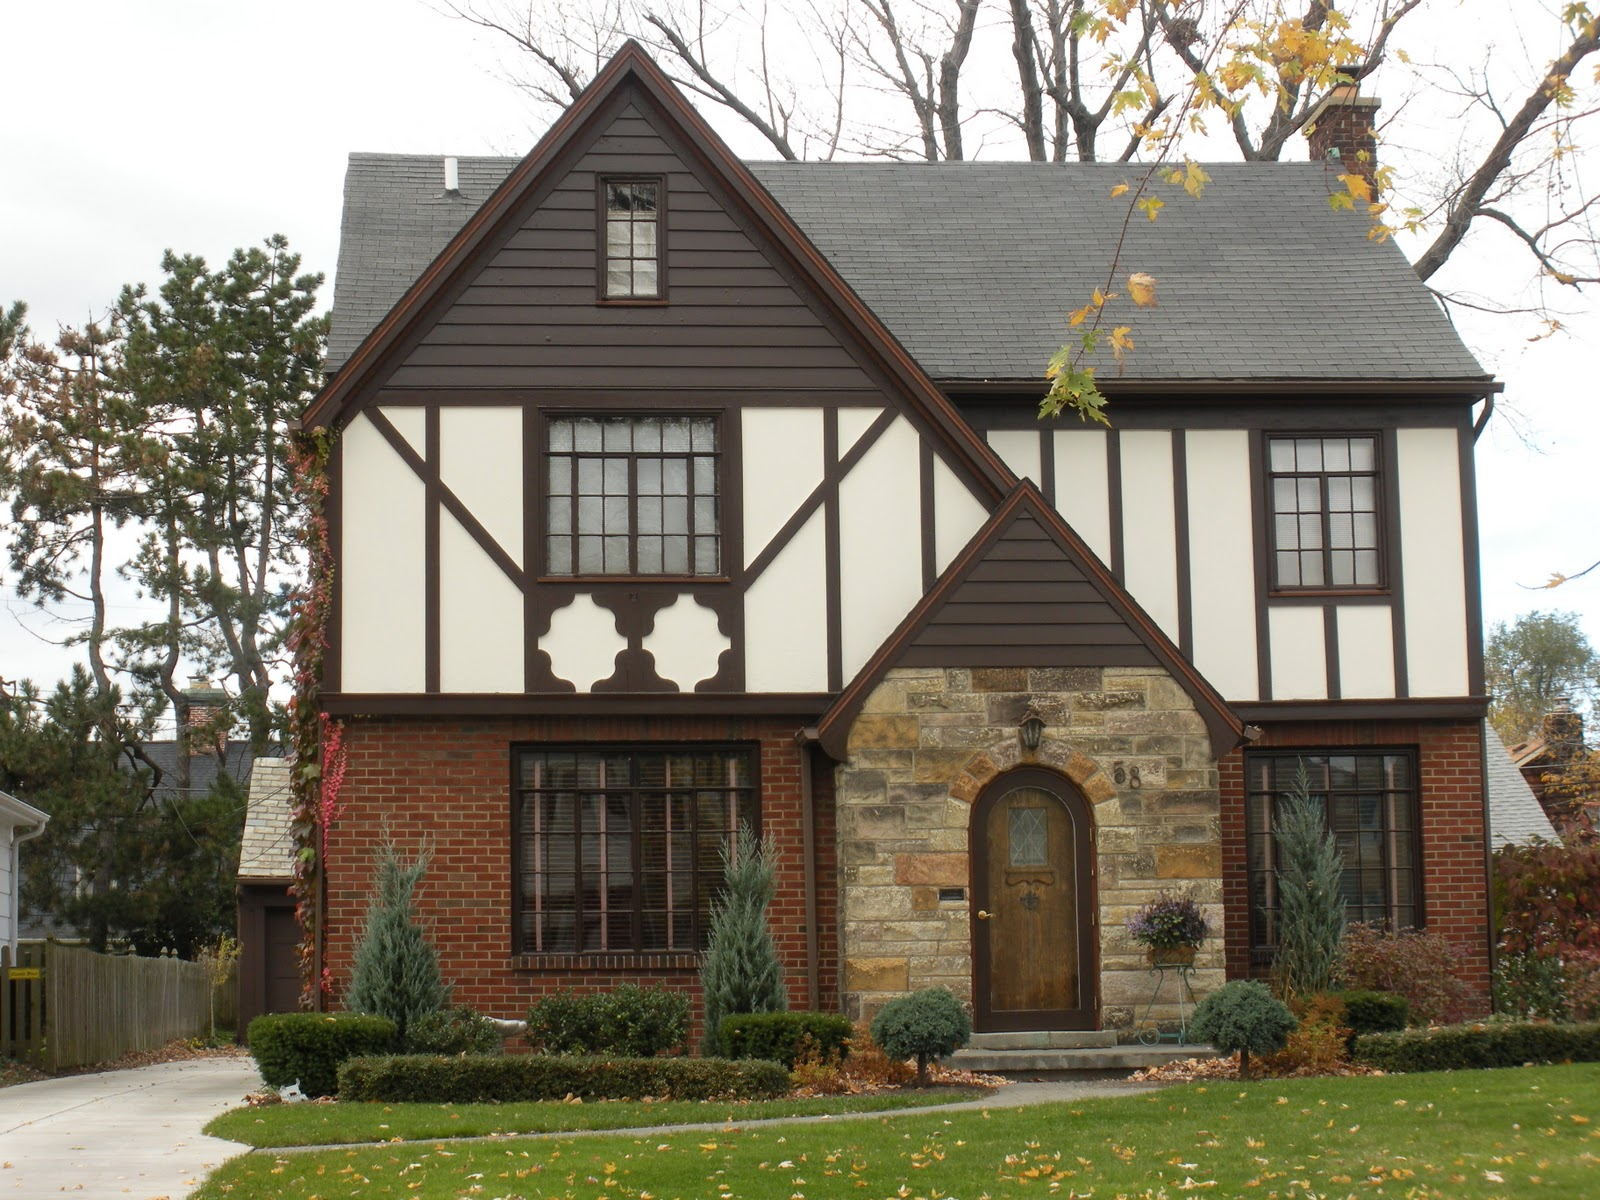 Reinventing the past housing styles of tudor ville and for Different house styles pictures